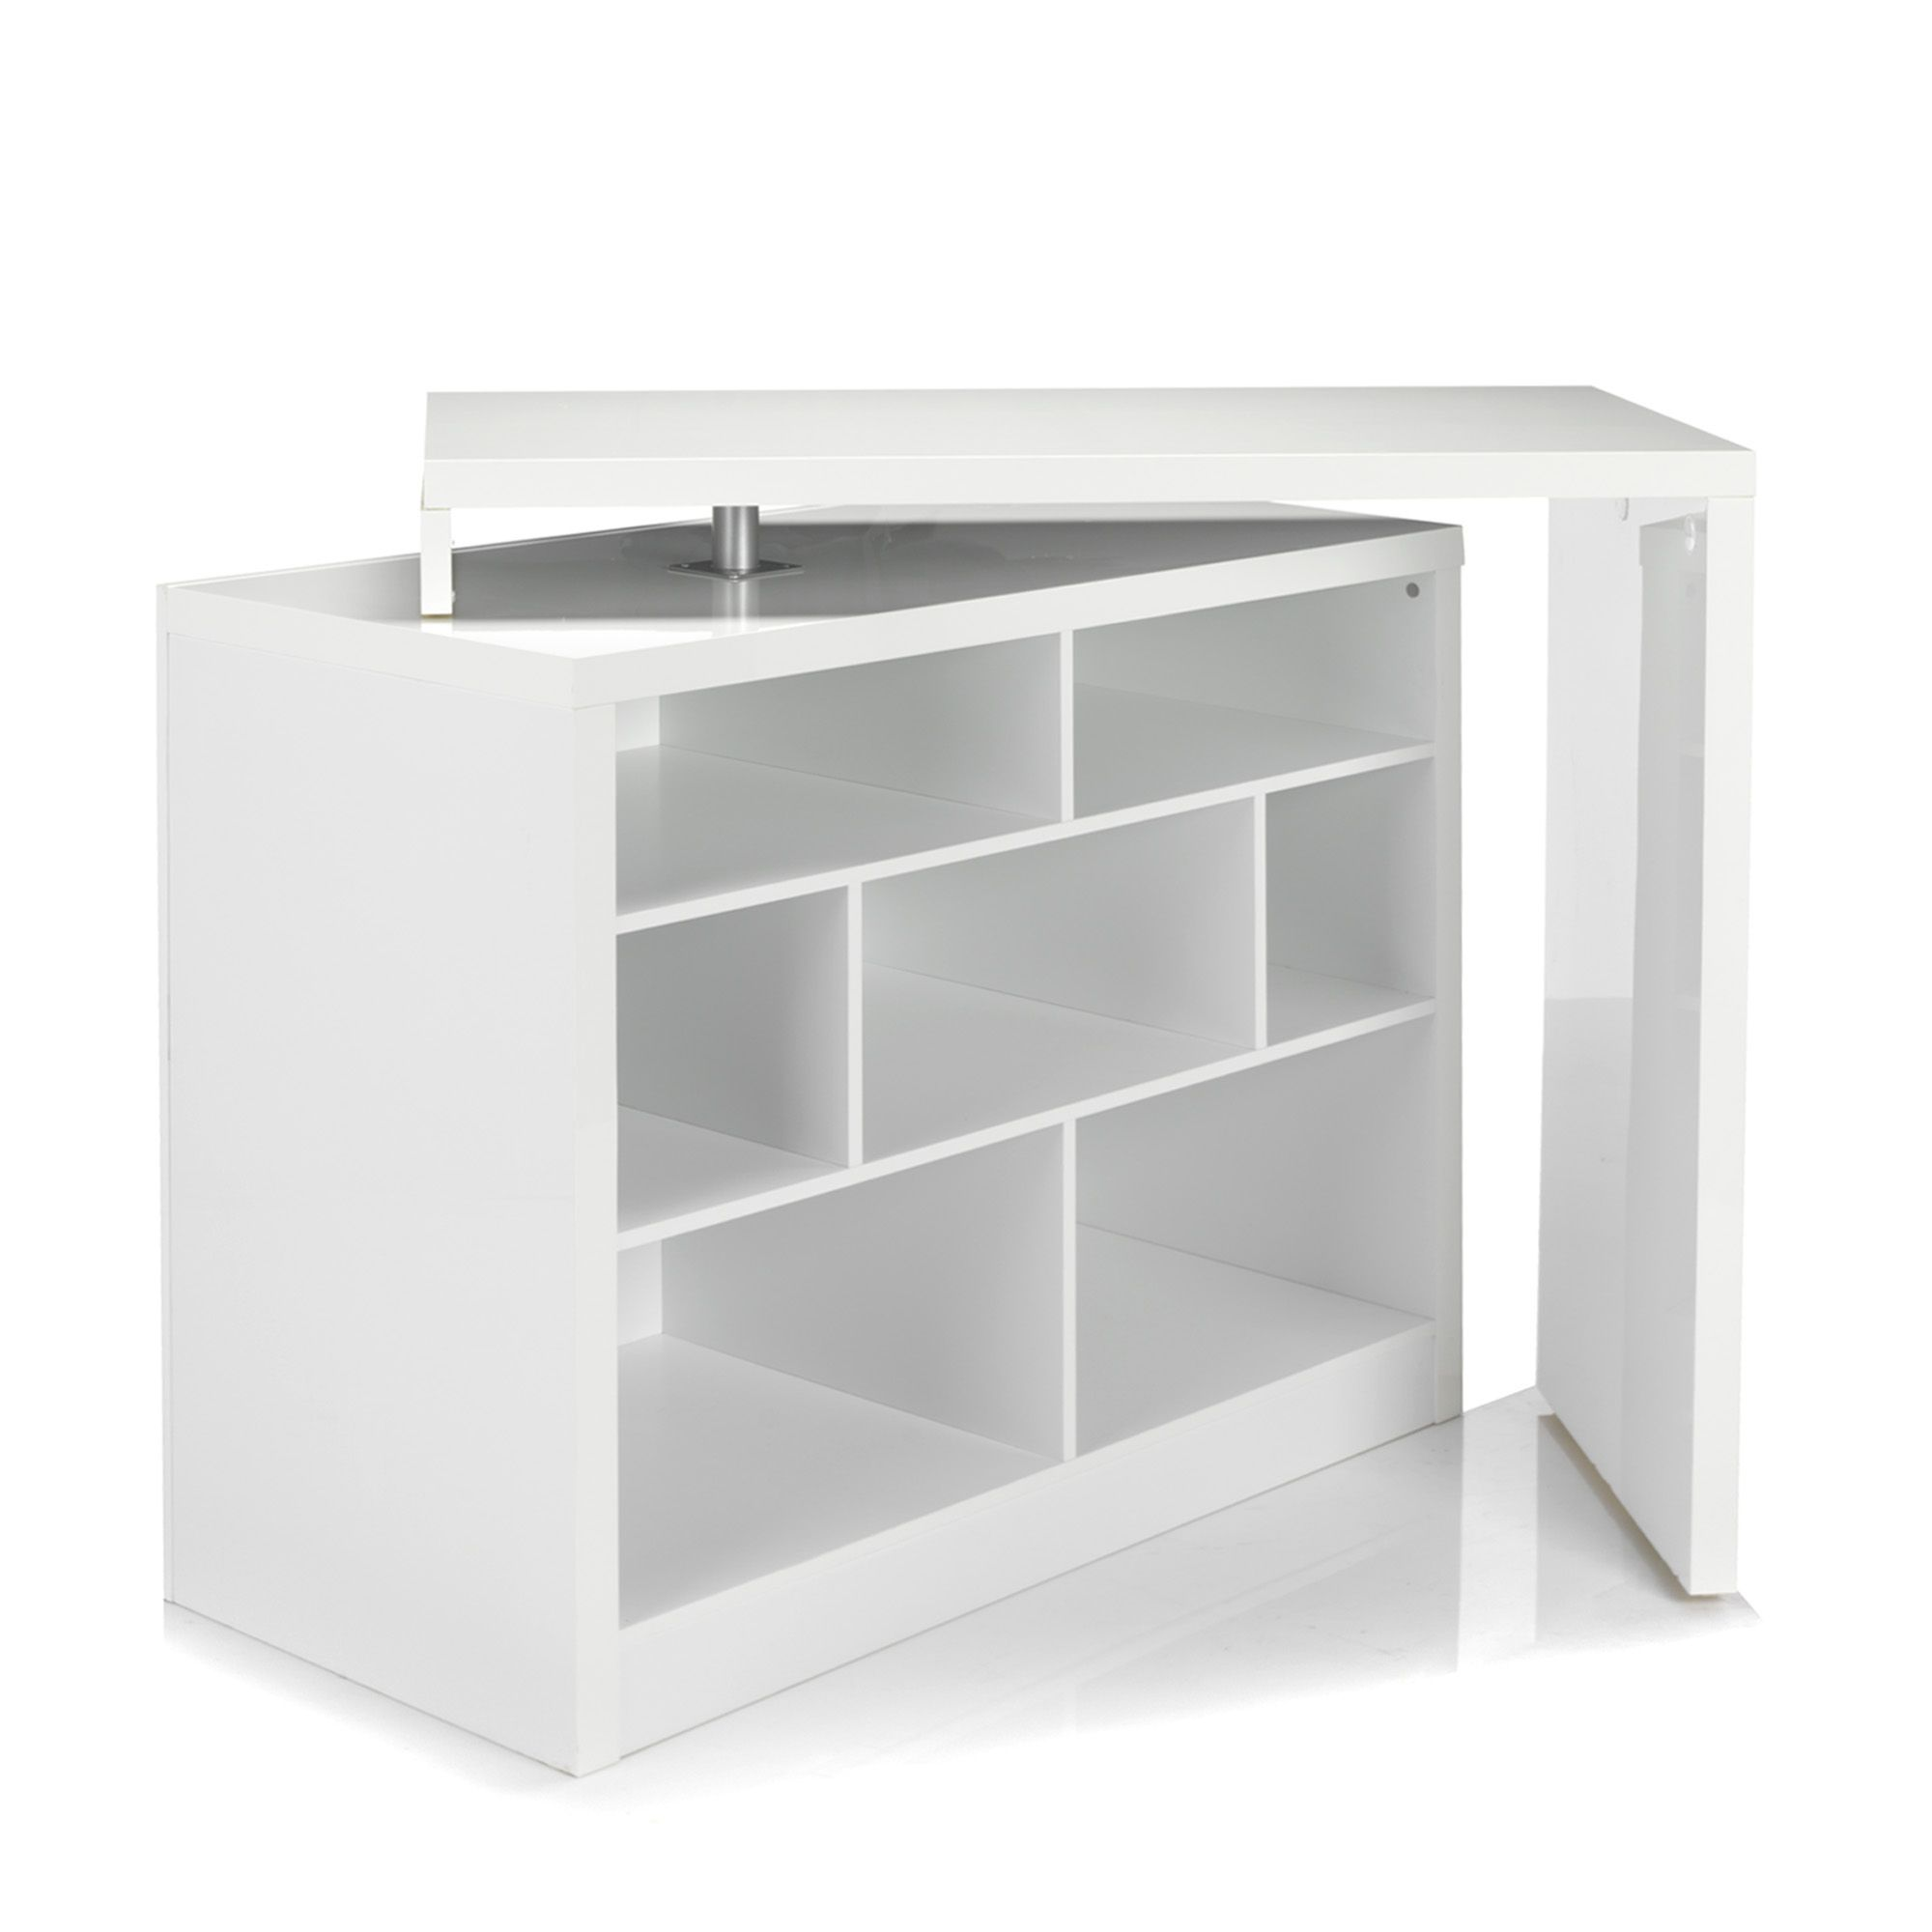 Bar table chock tables de repas alinea bar for Bureau 90 cm largeur